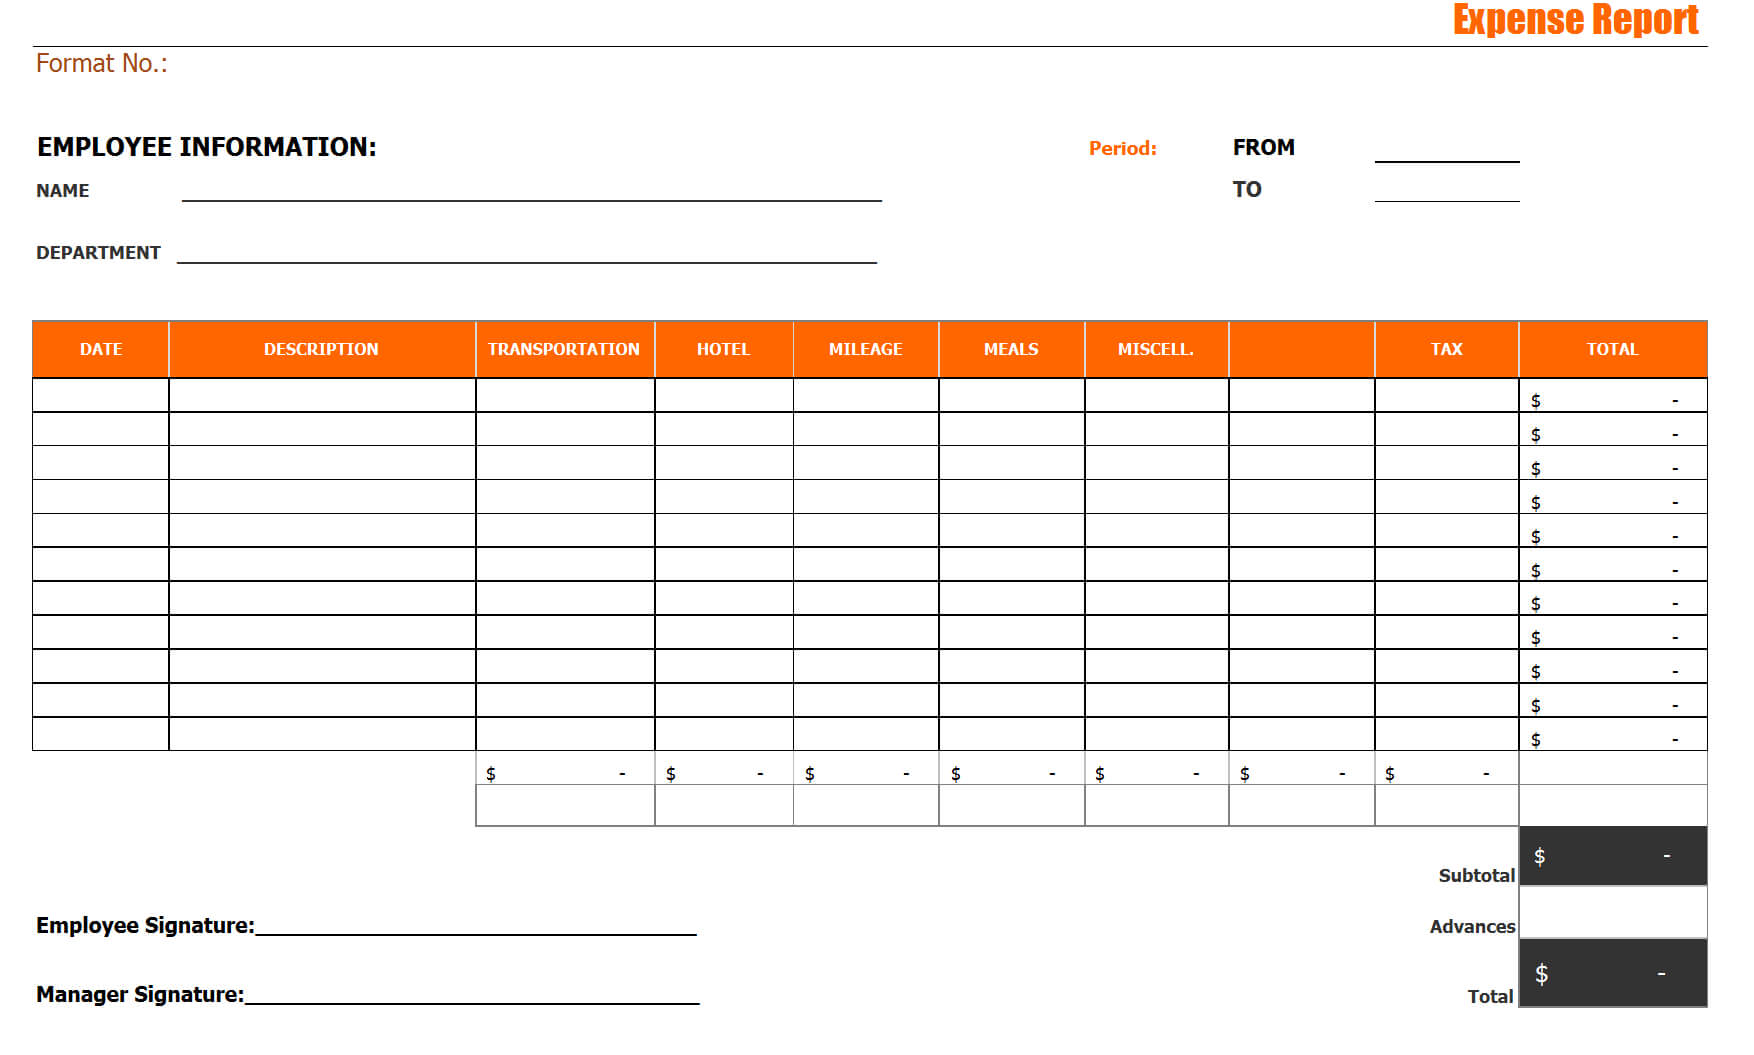 014 Free Expenses Report Template Expense Imposing Ideas Throughout Microsoft Word Expense Report Template